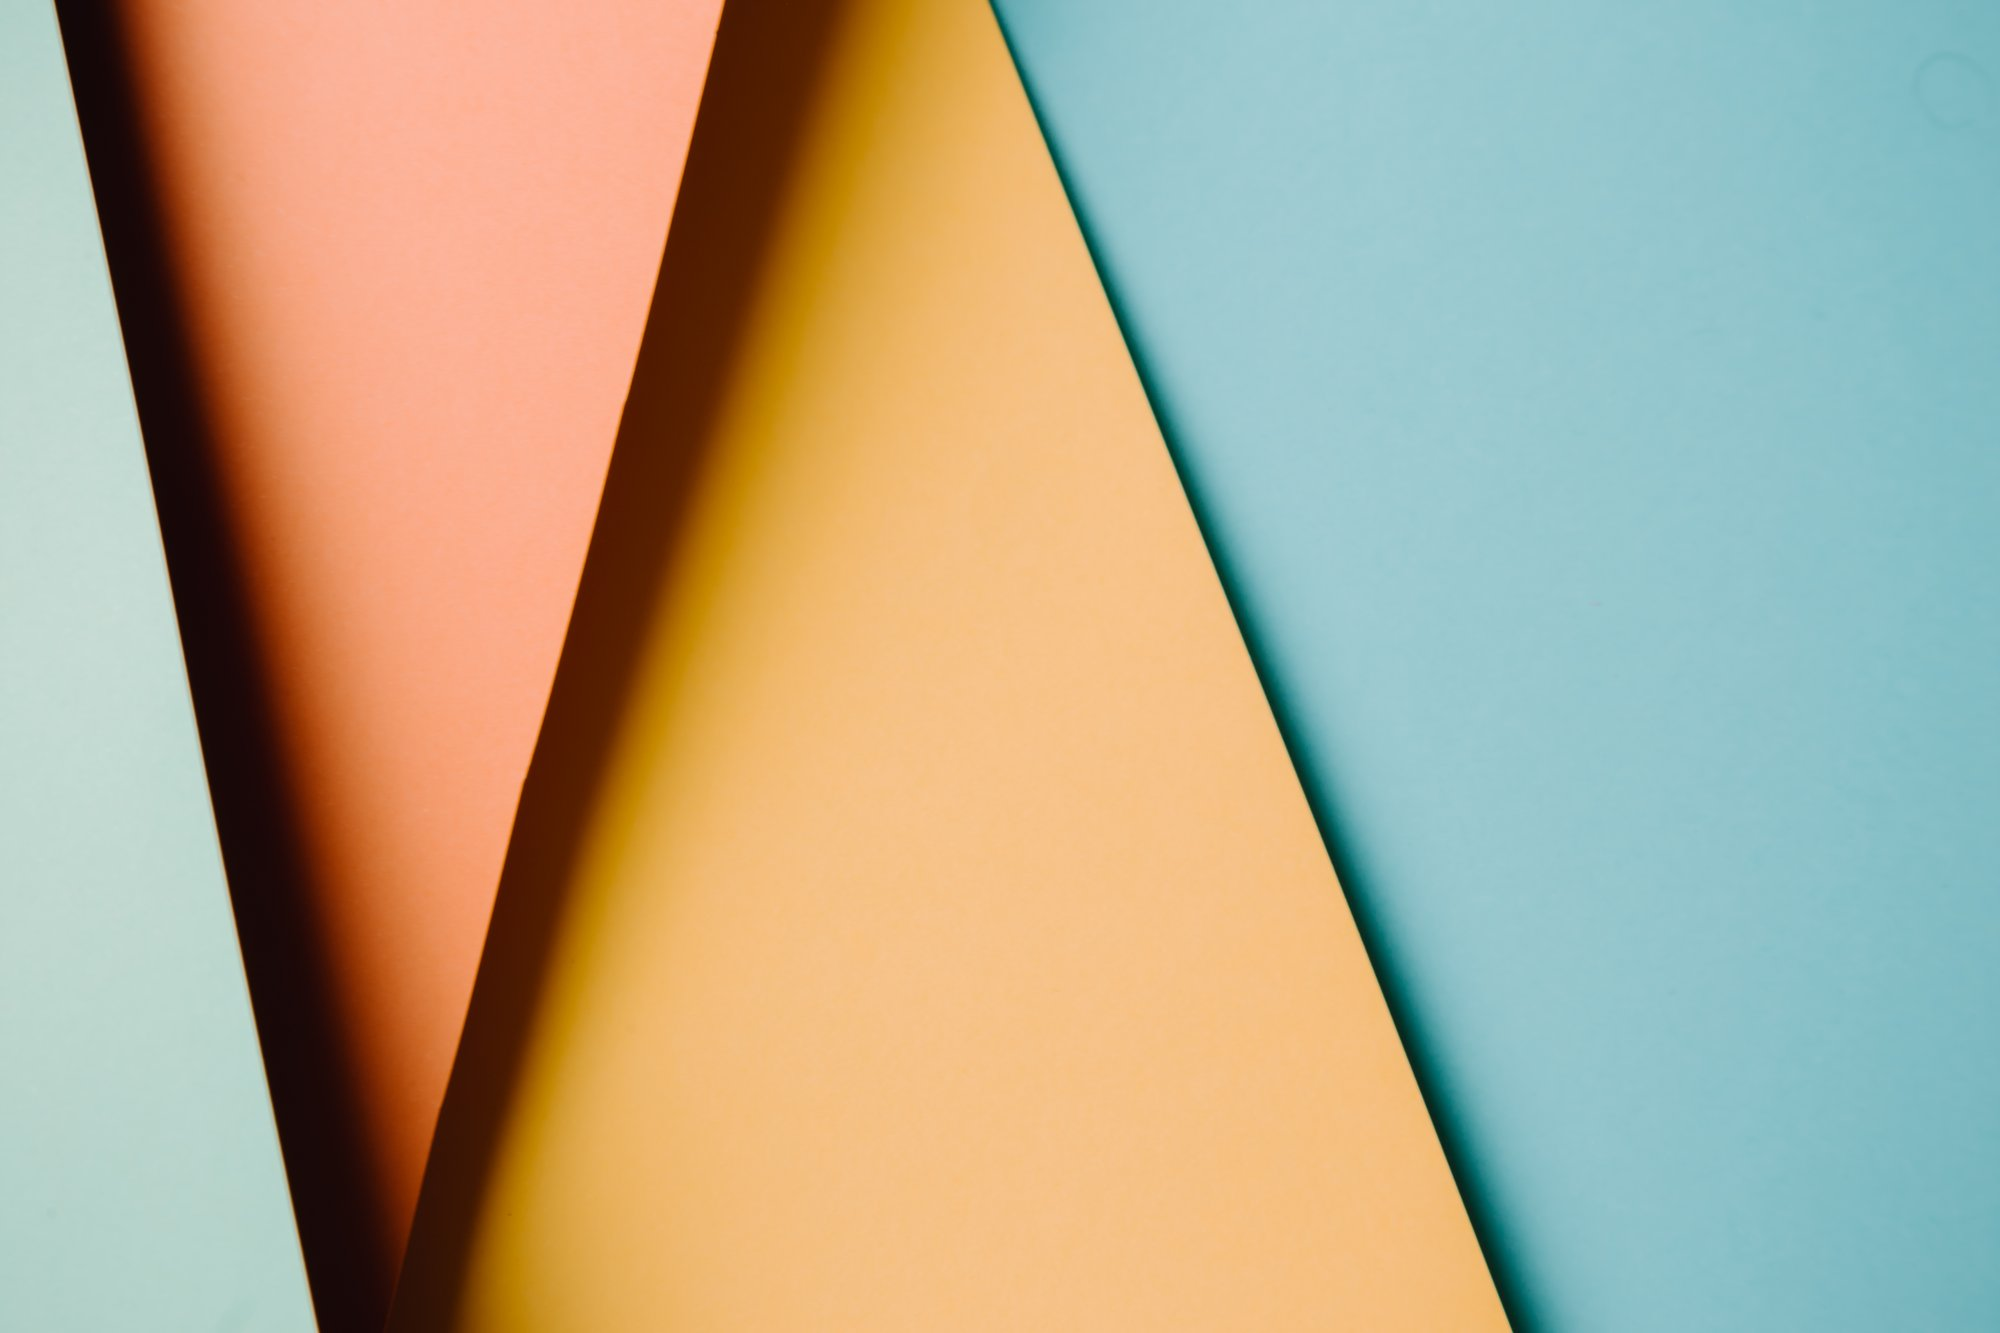 abstract background of four colored triangles 四色三角形的抽象背景